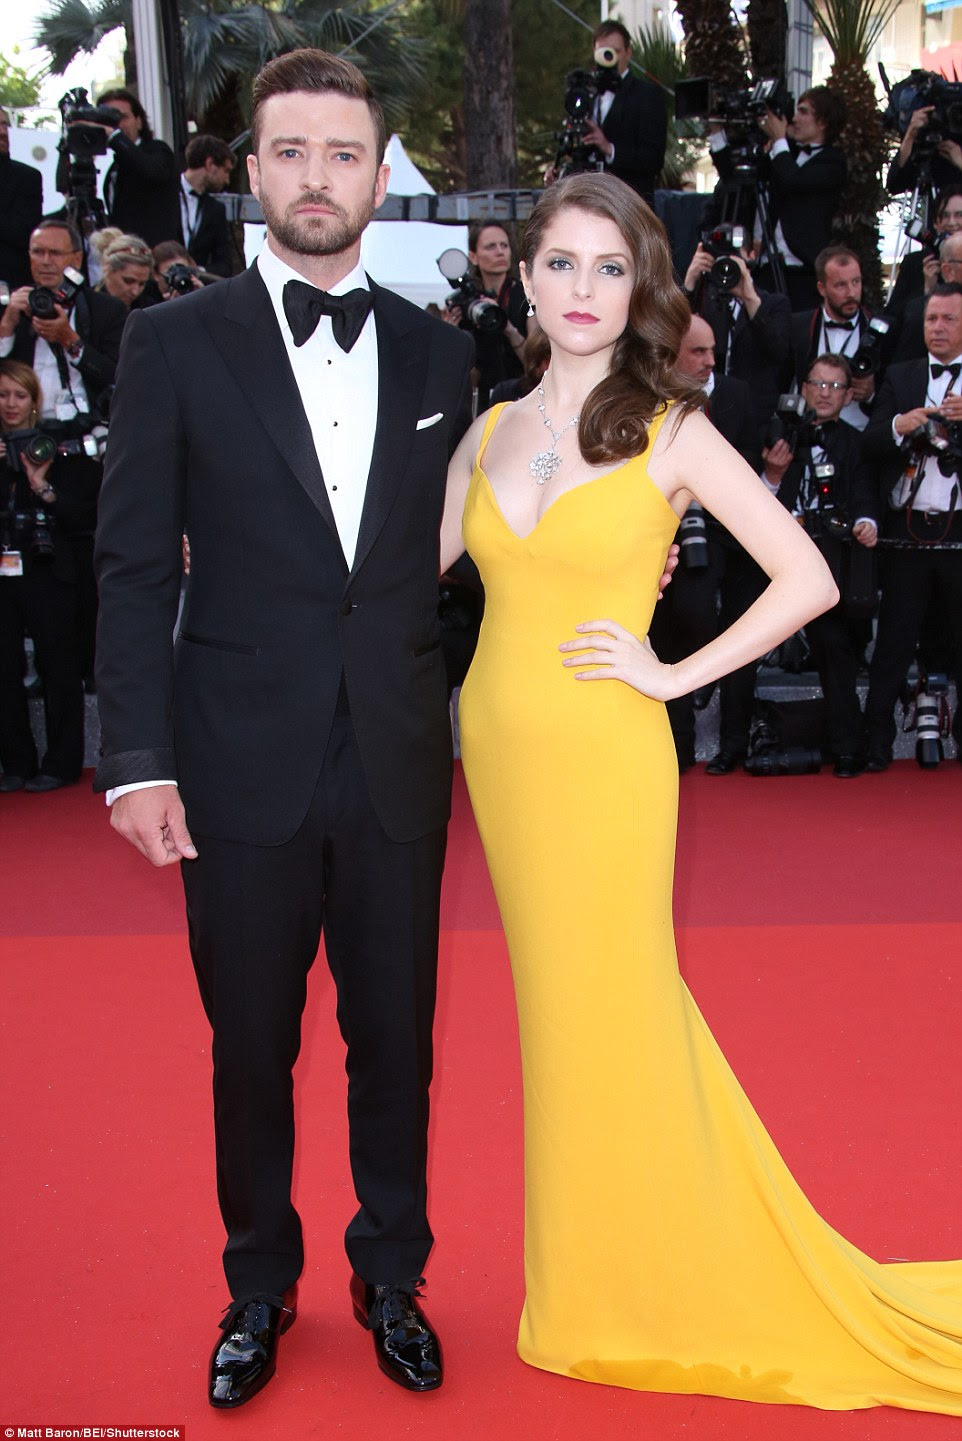 Wow-factor: Anna Kendrick pulled out all the stops when she attended the Cannes premiere of Woody Allen's latest movie on Wednesday, joining her Trolls co-star Justin Timberlake on the red carpet